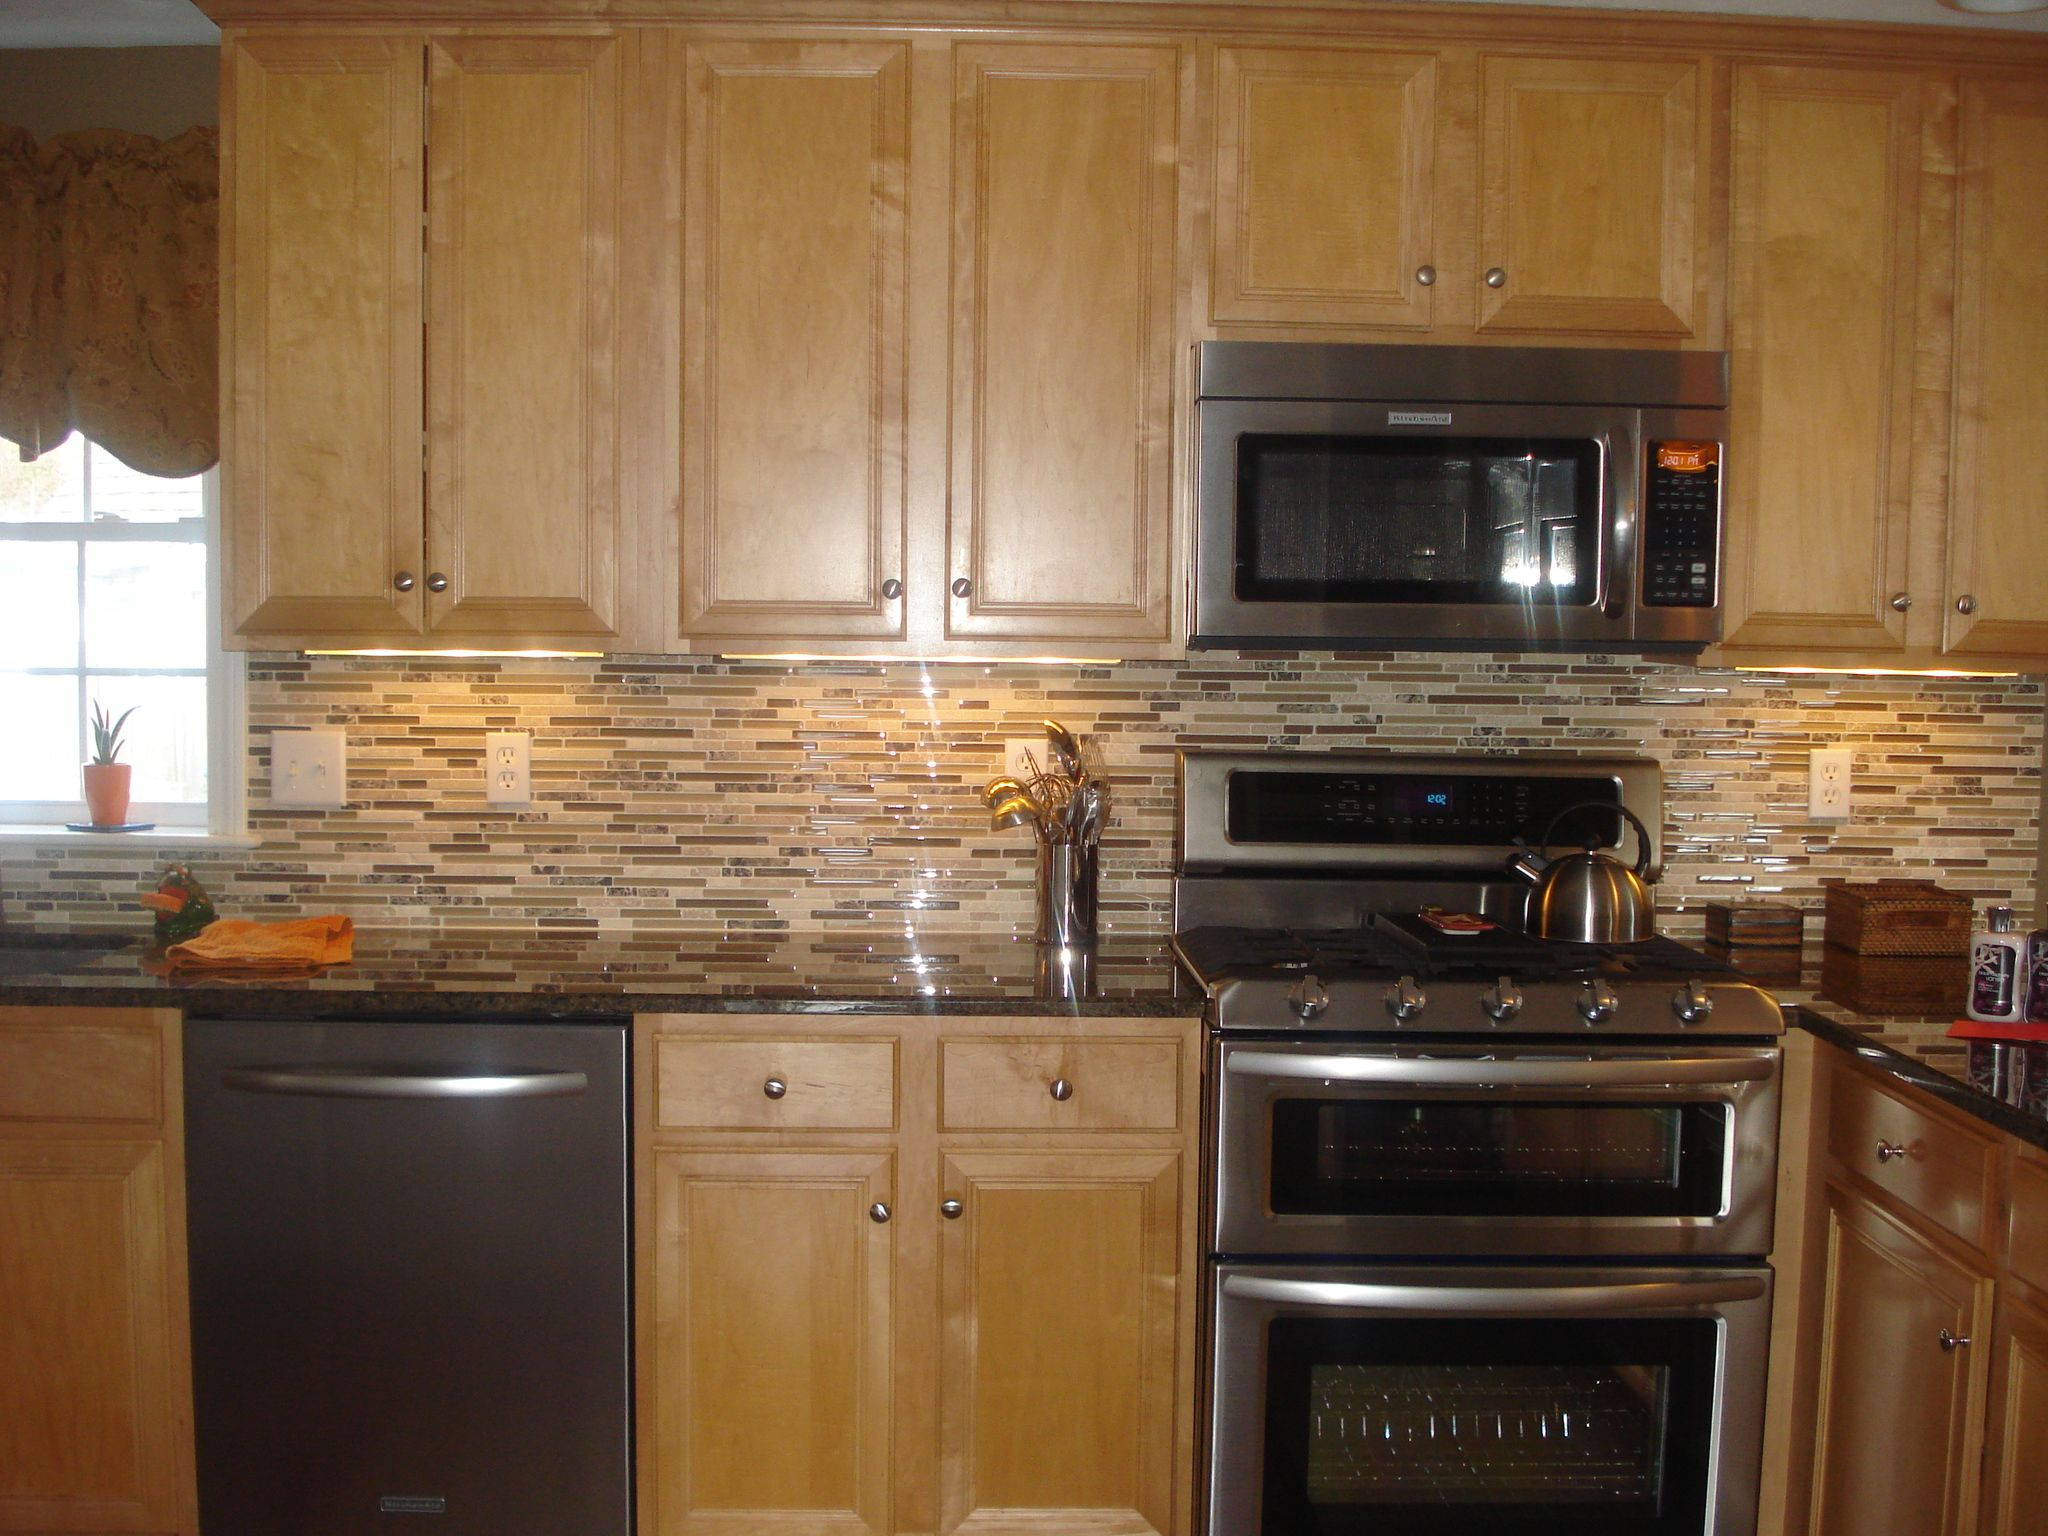 Kitchen Backsplash Ideas Black Granite Countertops Backsplash